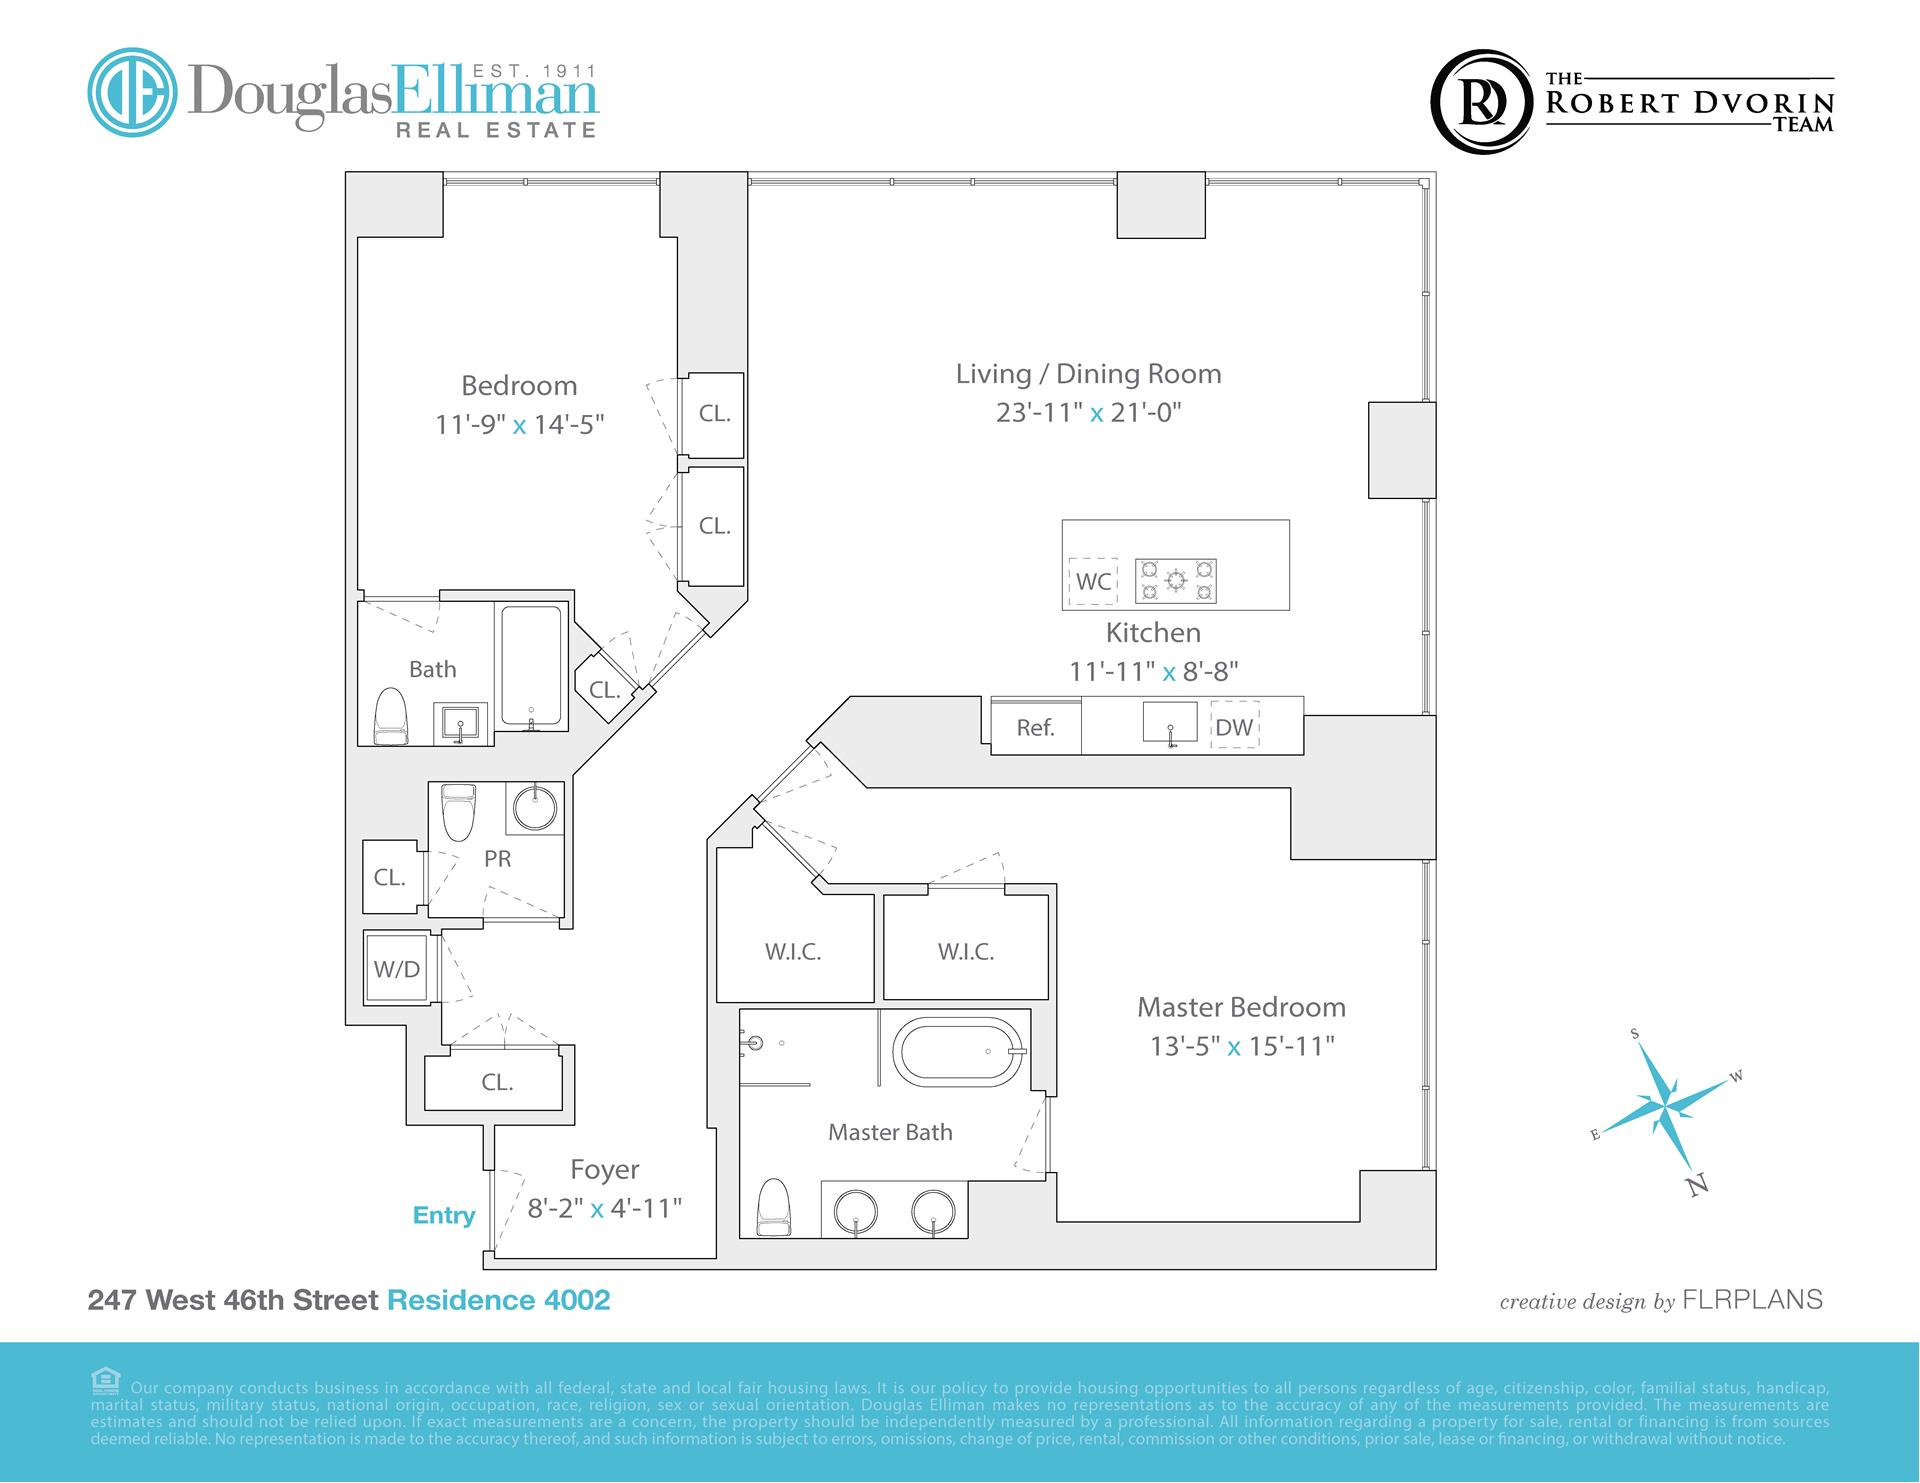 Floor plan of Platinum, 247 West 46th St, 4002 - Midtown, New York